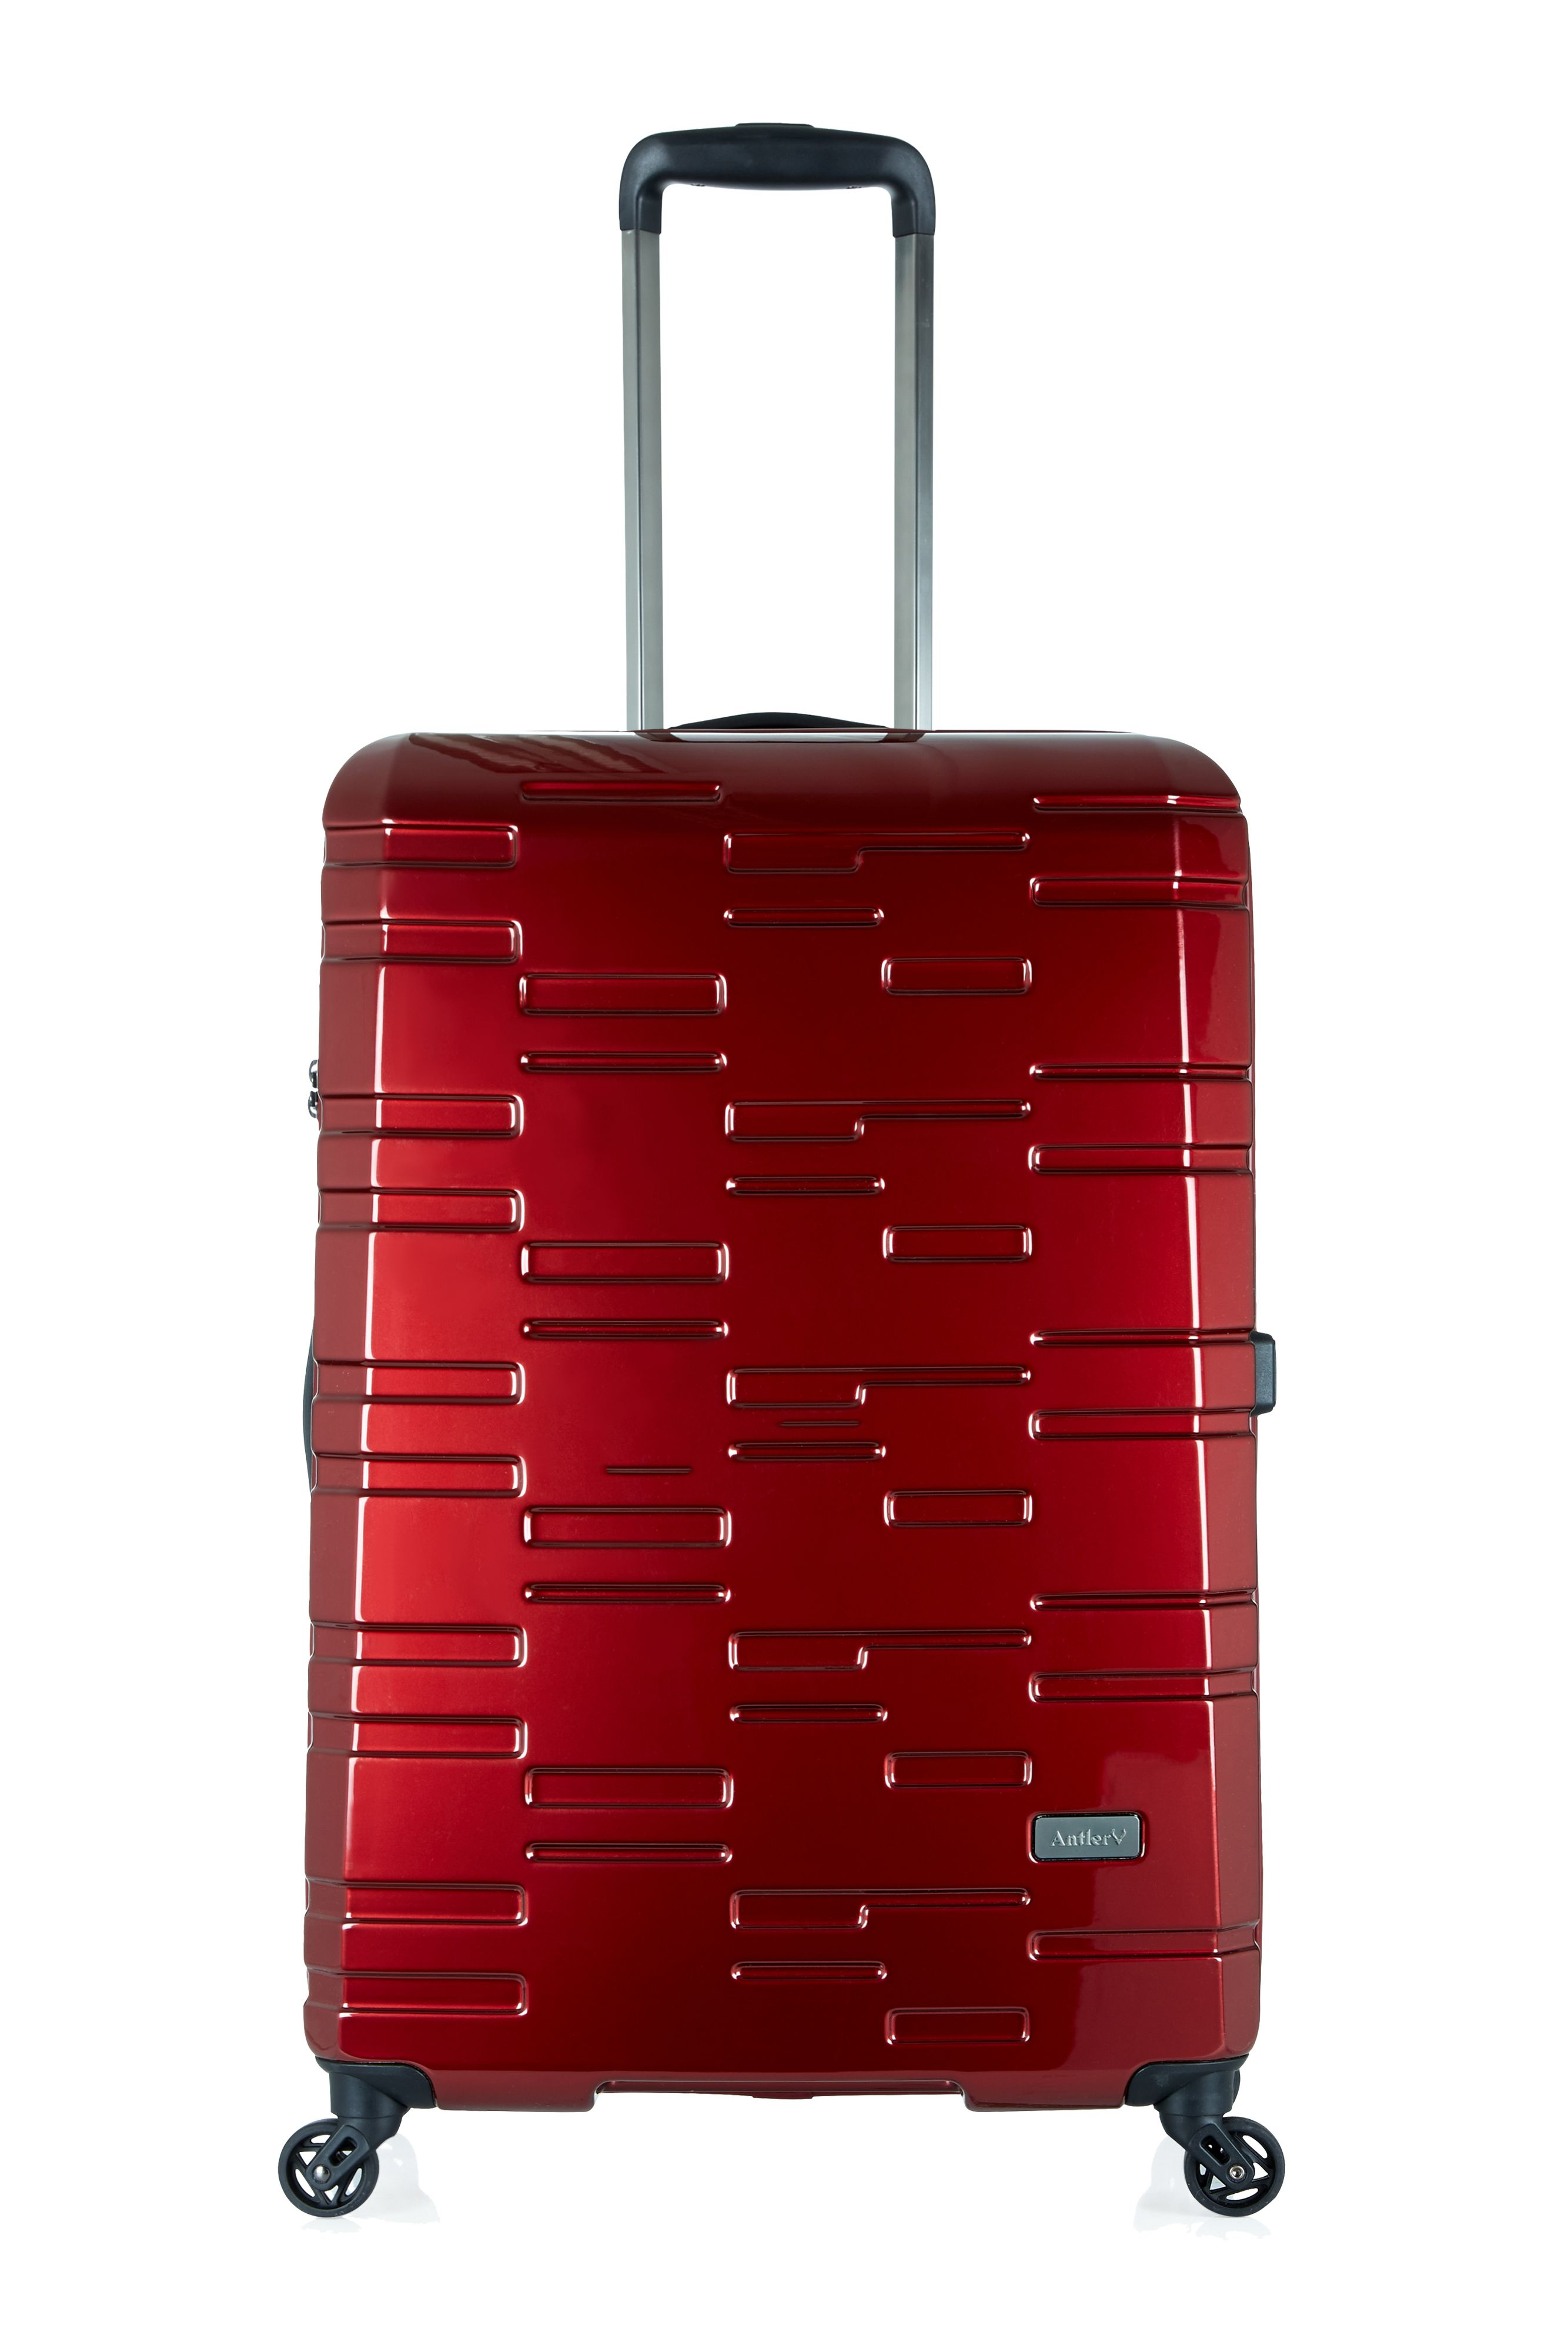 Antler Prism burgundy 4 wheel hard large suitcase Burgundy